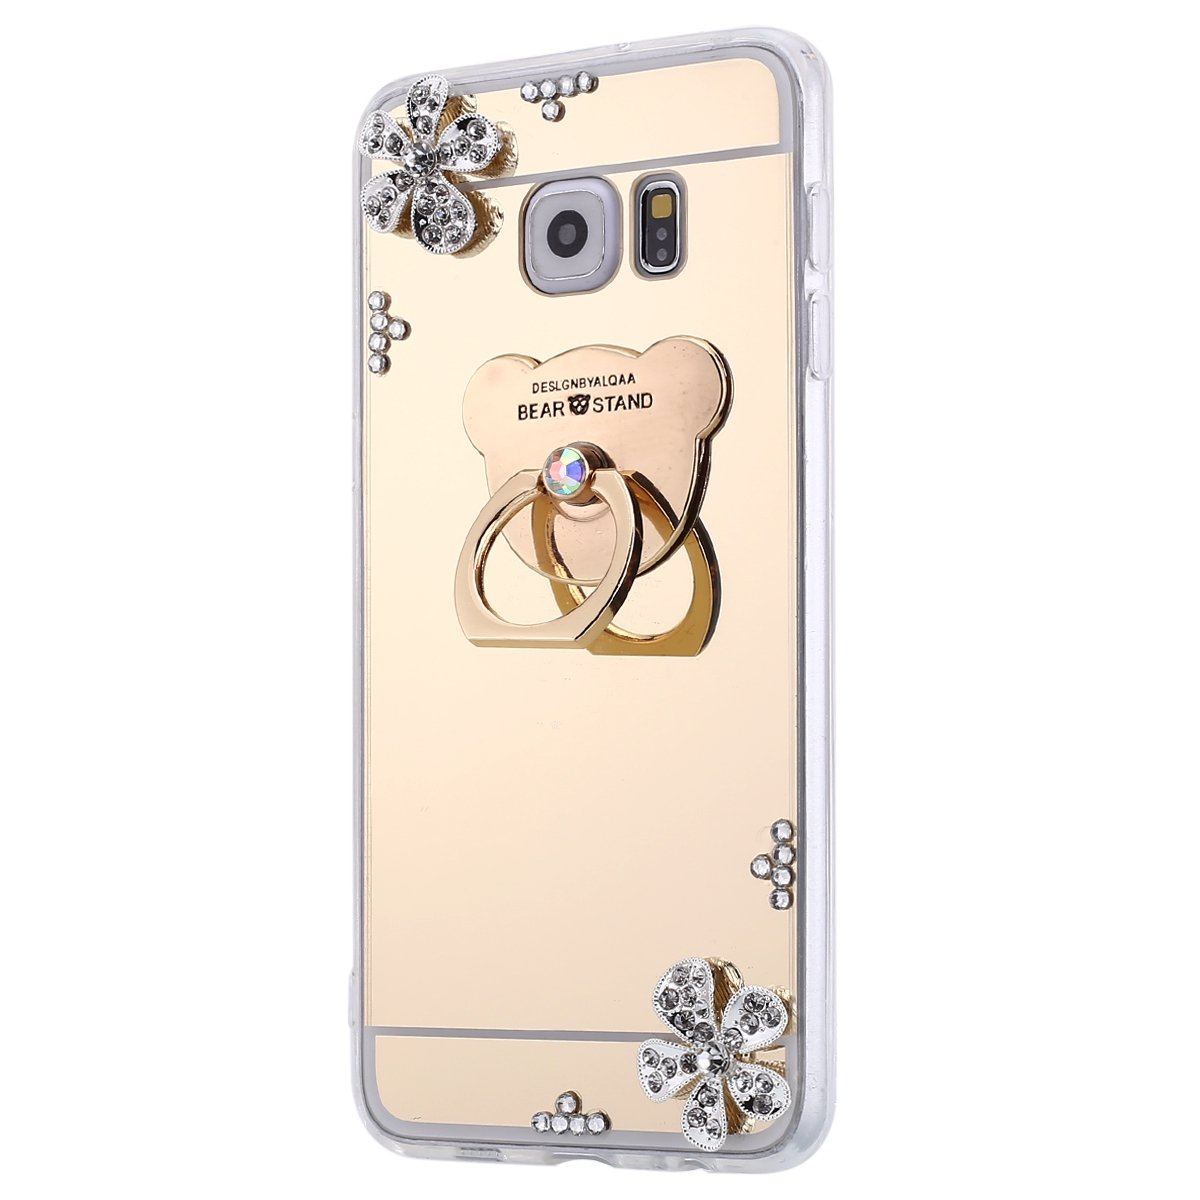 Isaken Galaxy S6 Edge Plus Case Ring Holder Mirror For Samsung Protection